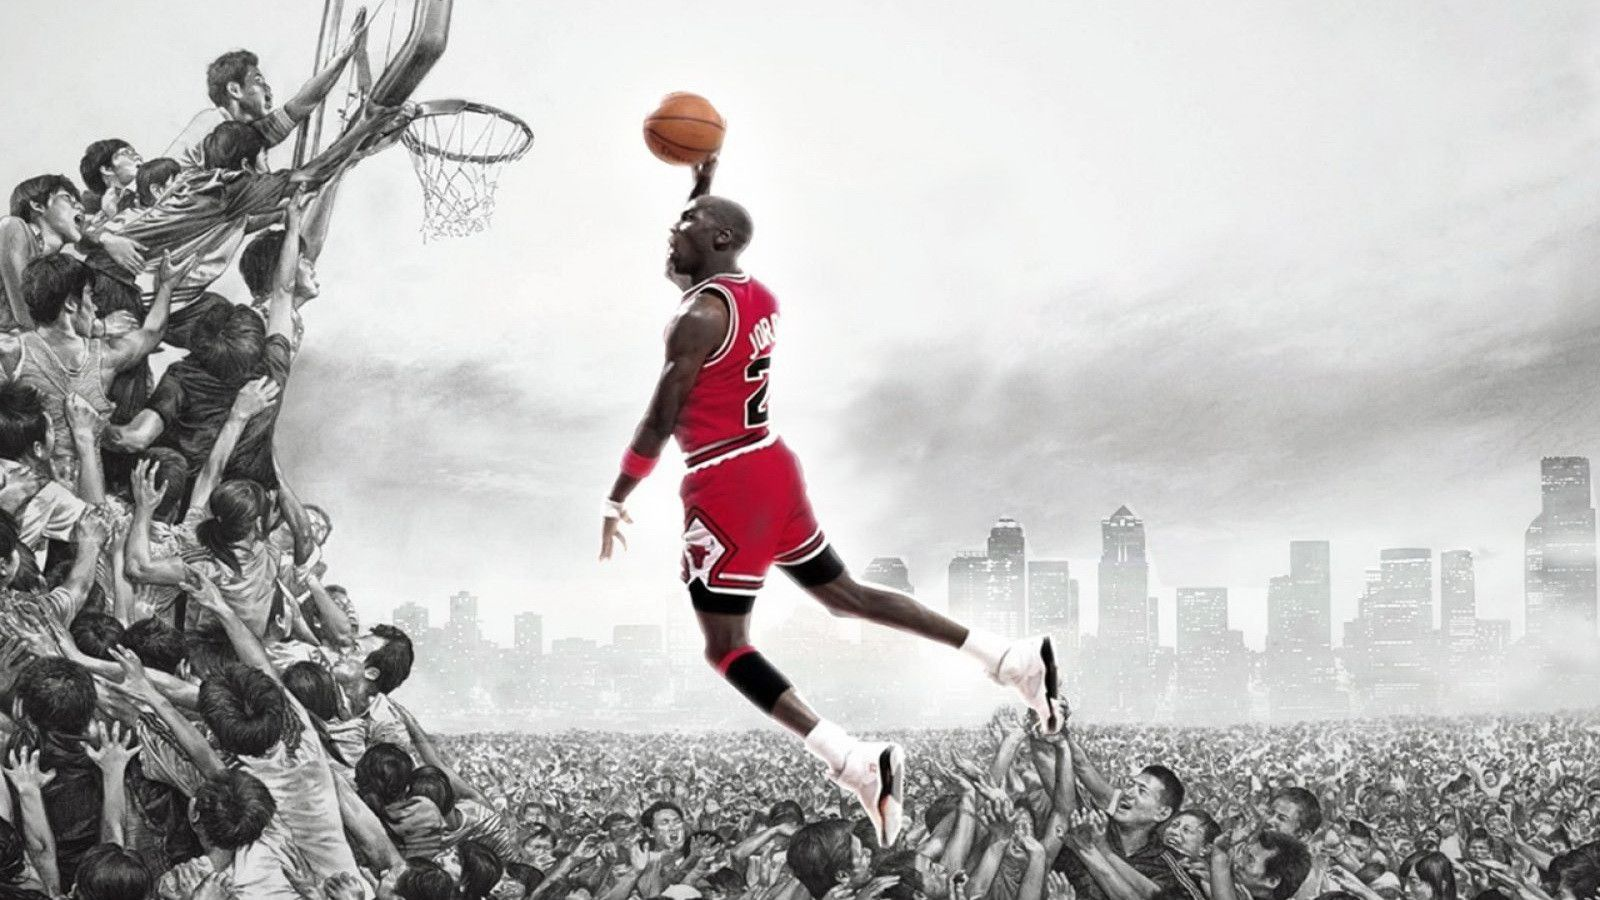 Wallpapers Of Michael Jordan